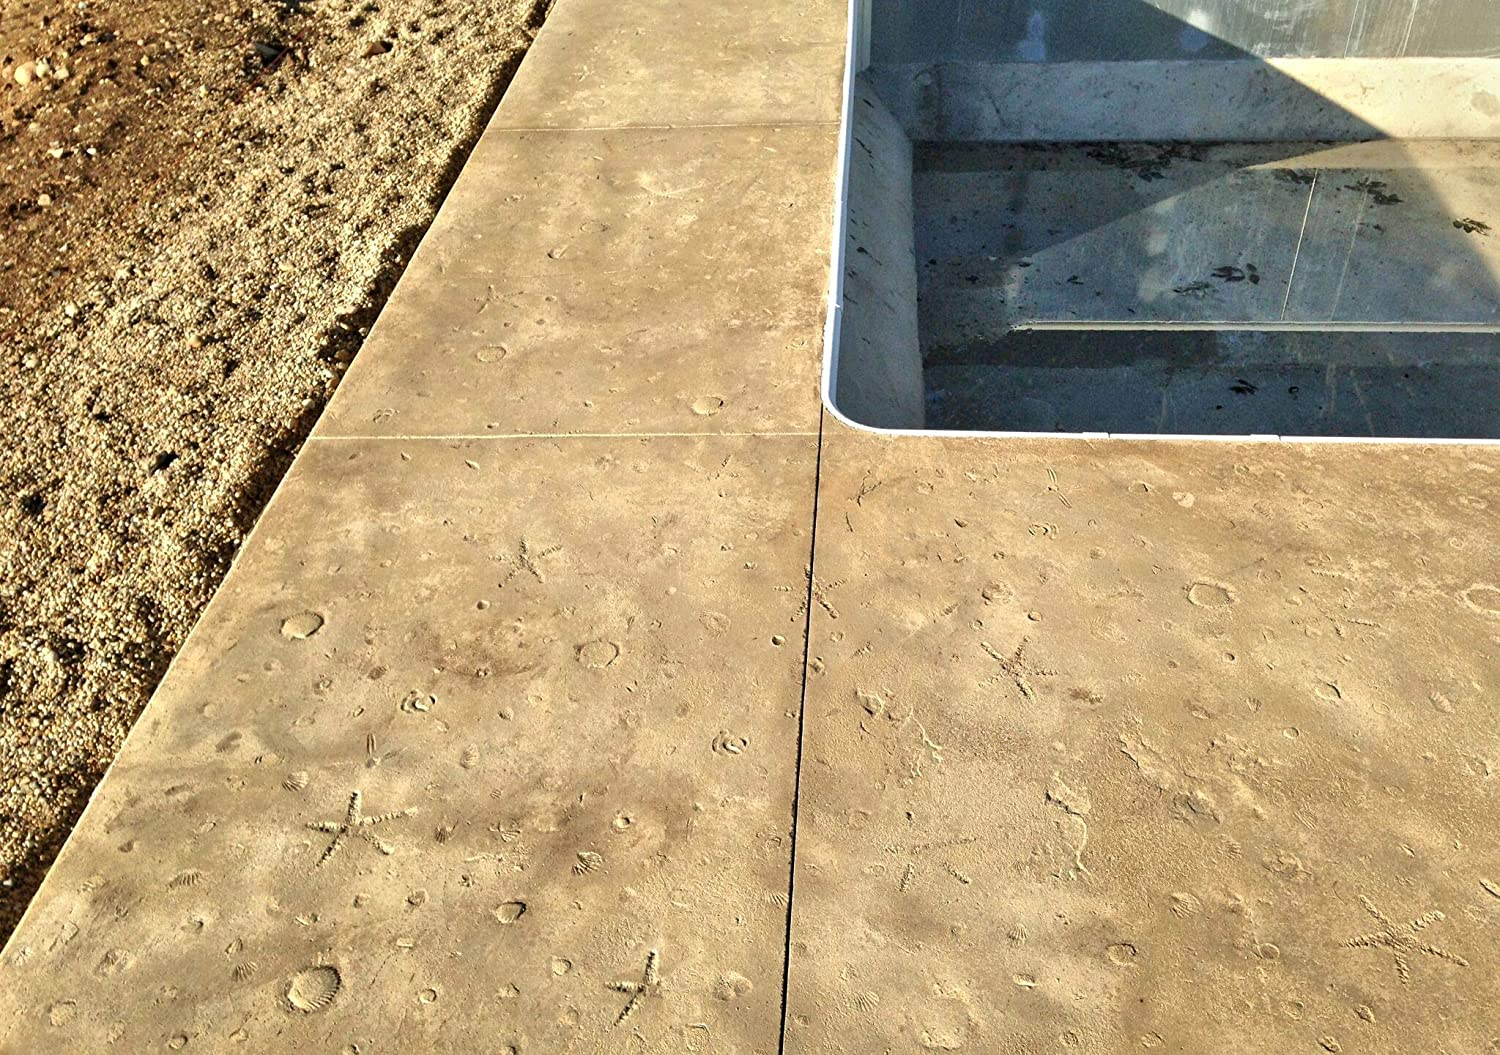 Concrete 10+ Authentic Decorative Patterns Available Cement Seascape Ocean Floor Walttools 3 x 3 ft Seamless Concrete Stamp Texturing Skin Single Overlay